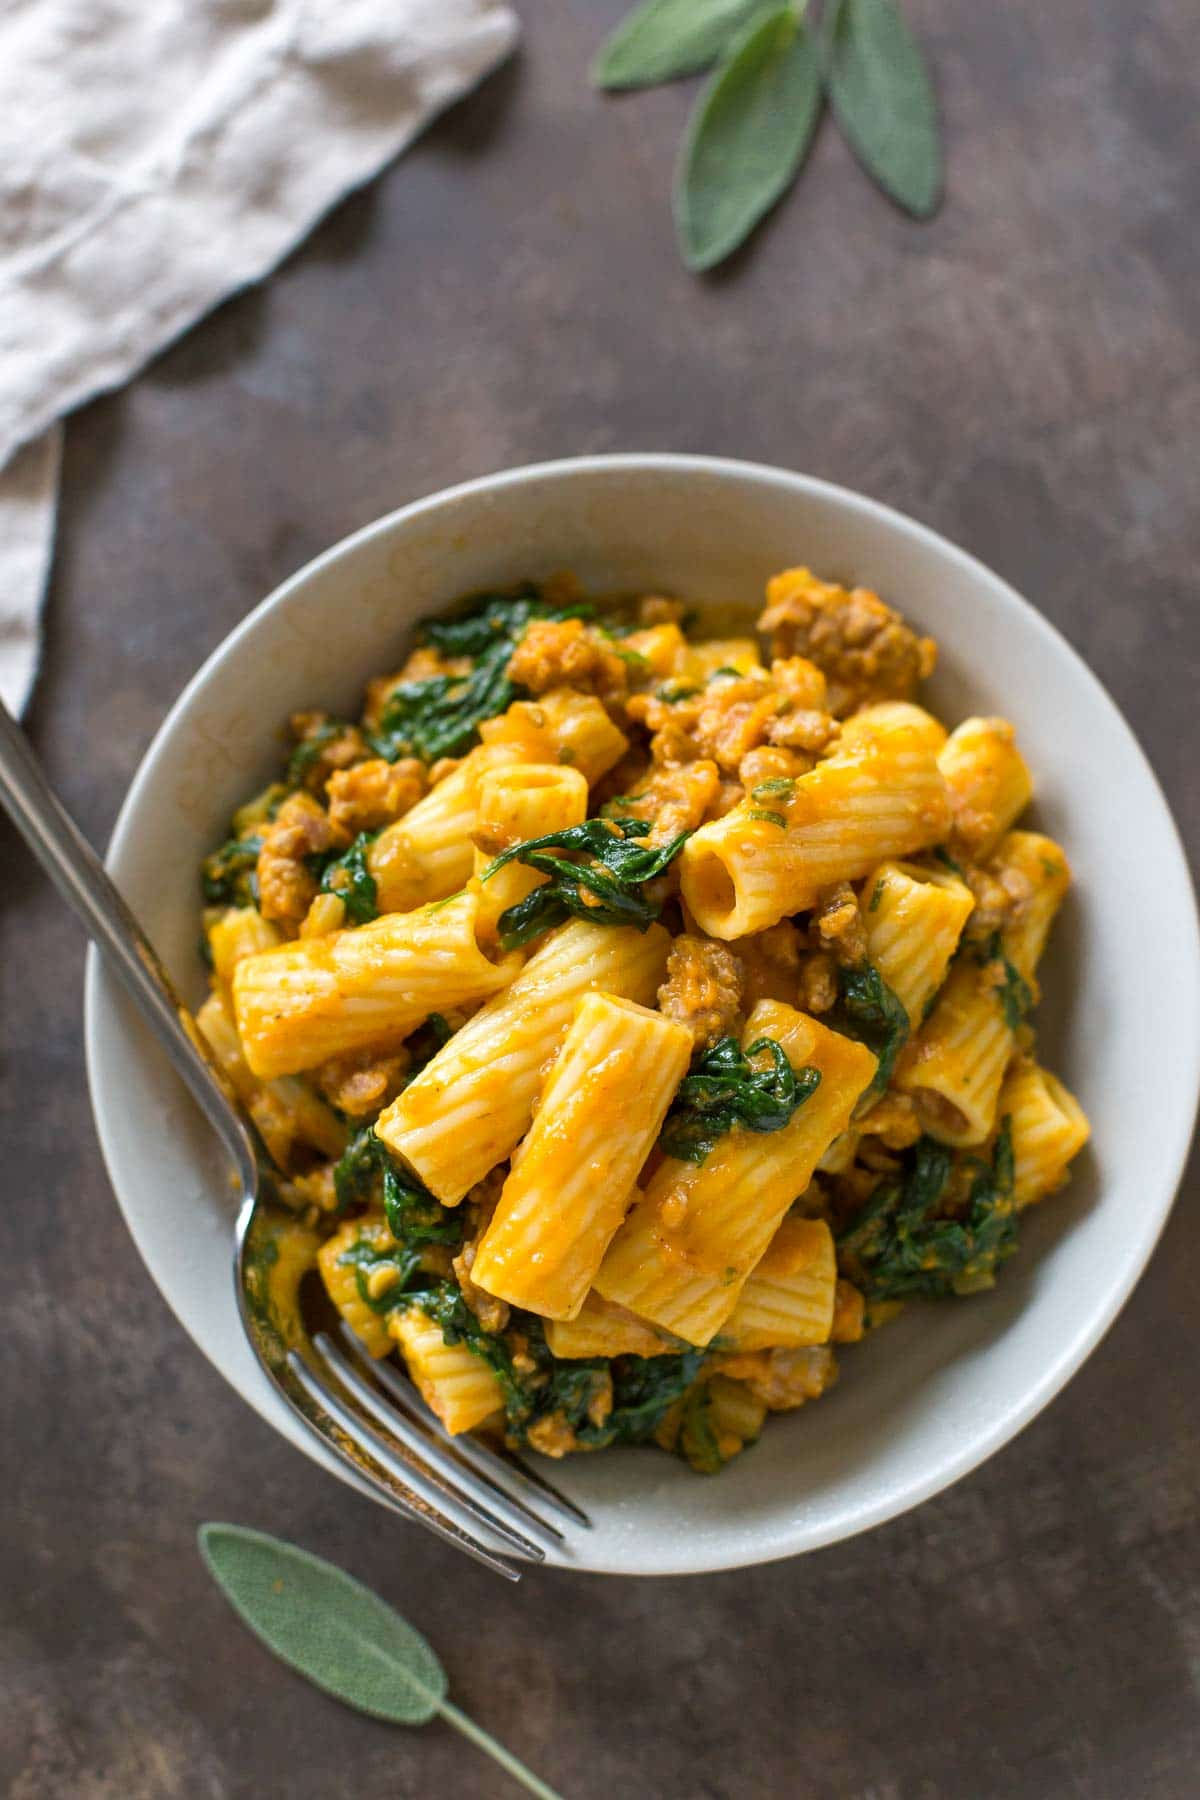 Pumpkin Rigatoni with Italian Sausage & Spinach | Savory pumpkin recipes, dairy free pasta recipe, easy dinner recipe, pumpkin recipe, pasta dinner recipe, fall dinner ideas | @simplywhisked